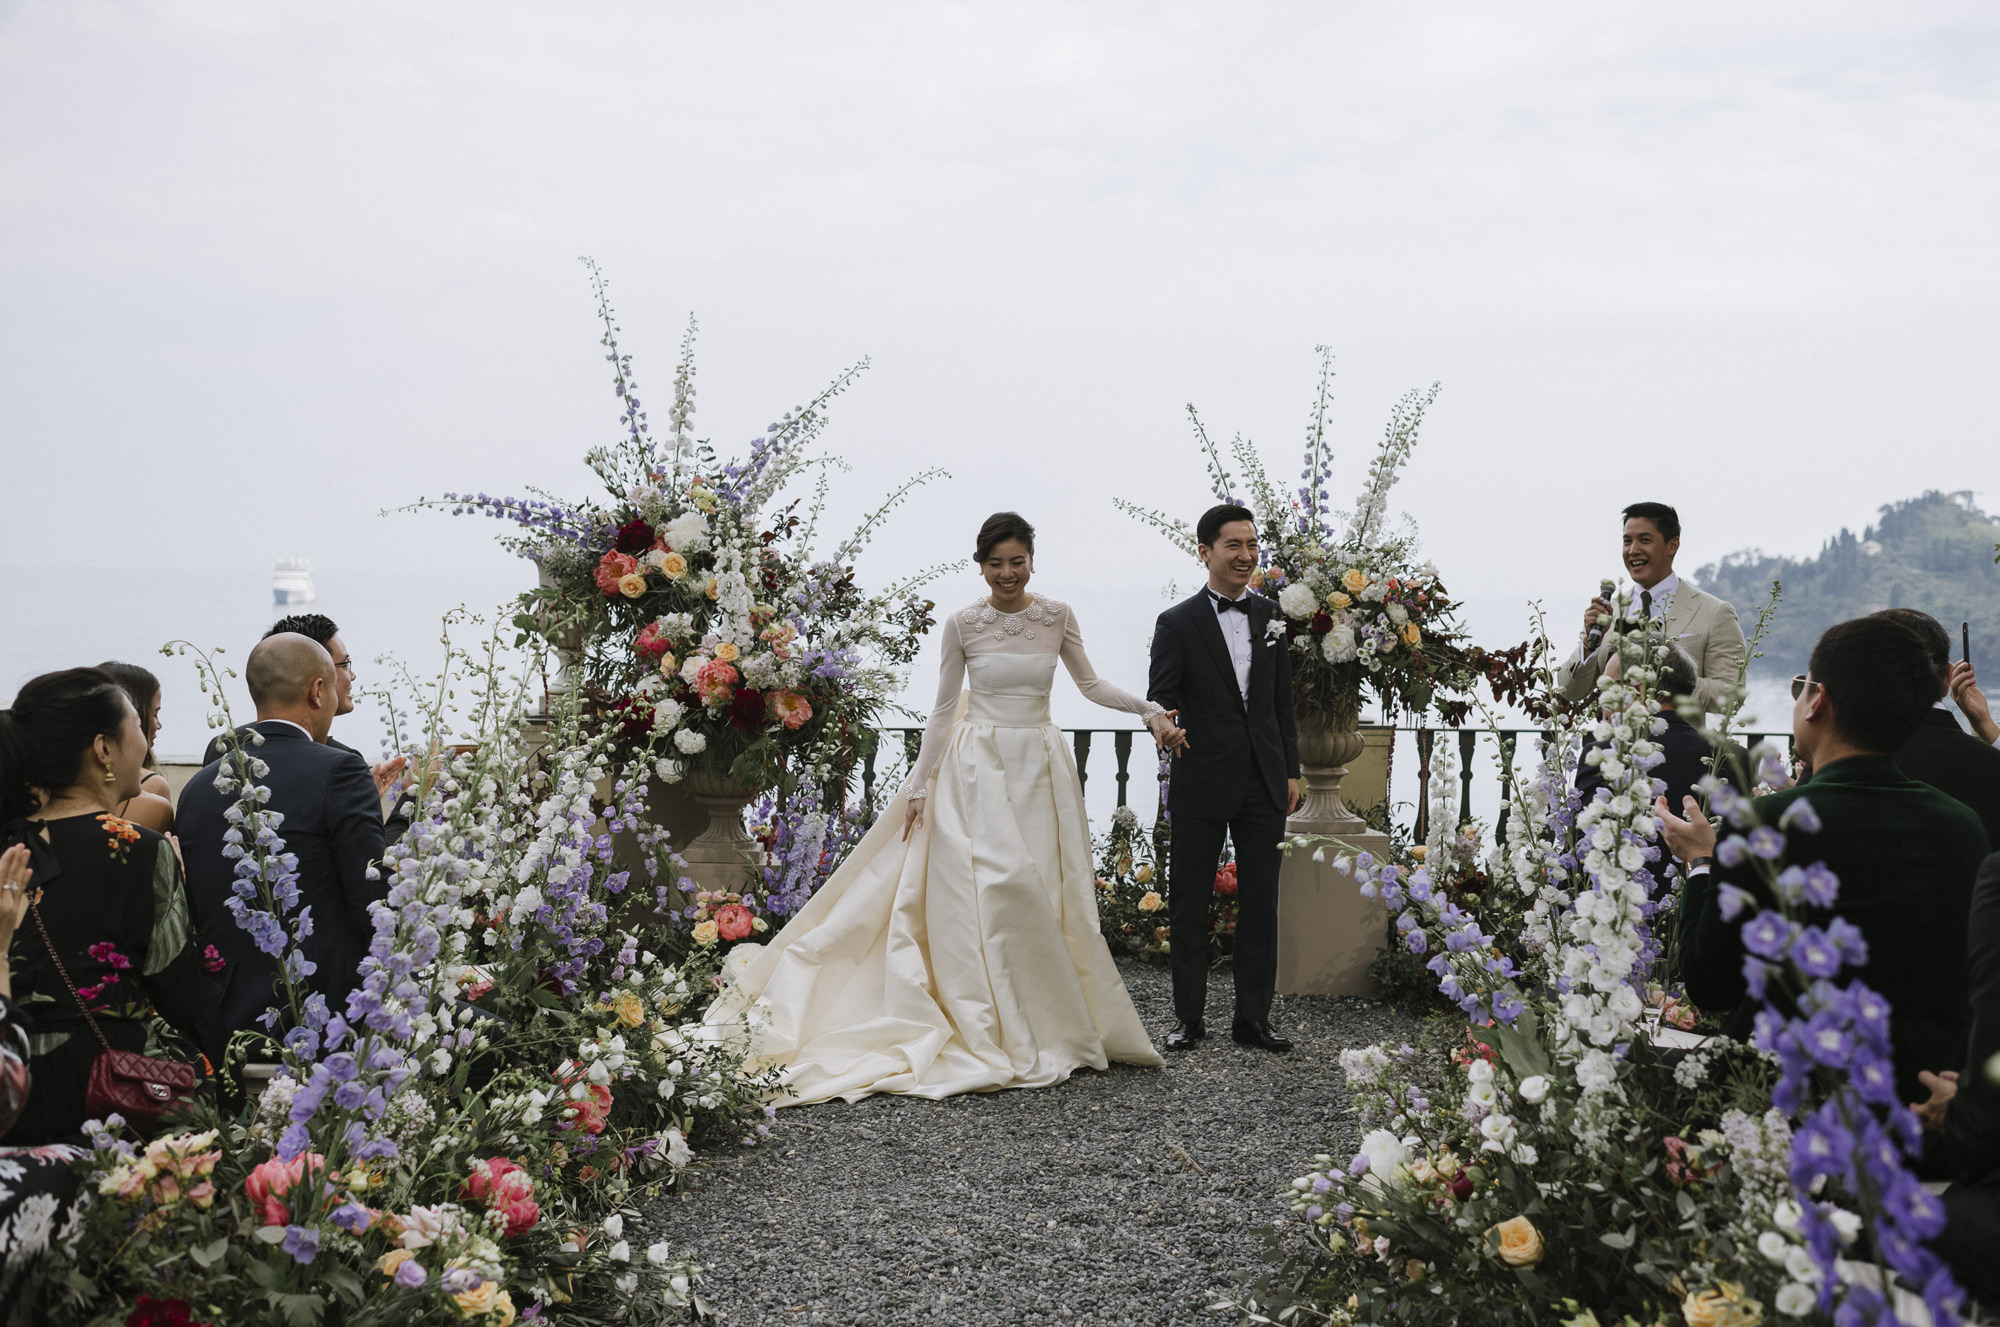 Asian couple just married at beautiful floral arbor, photo by Thierry Joubert